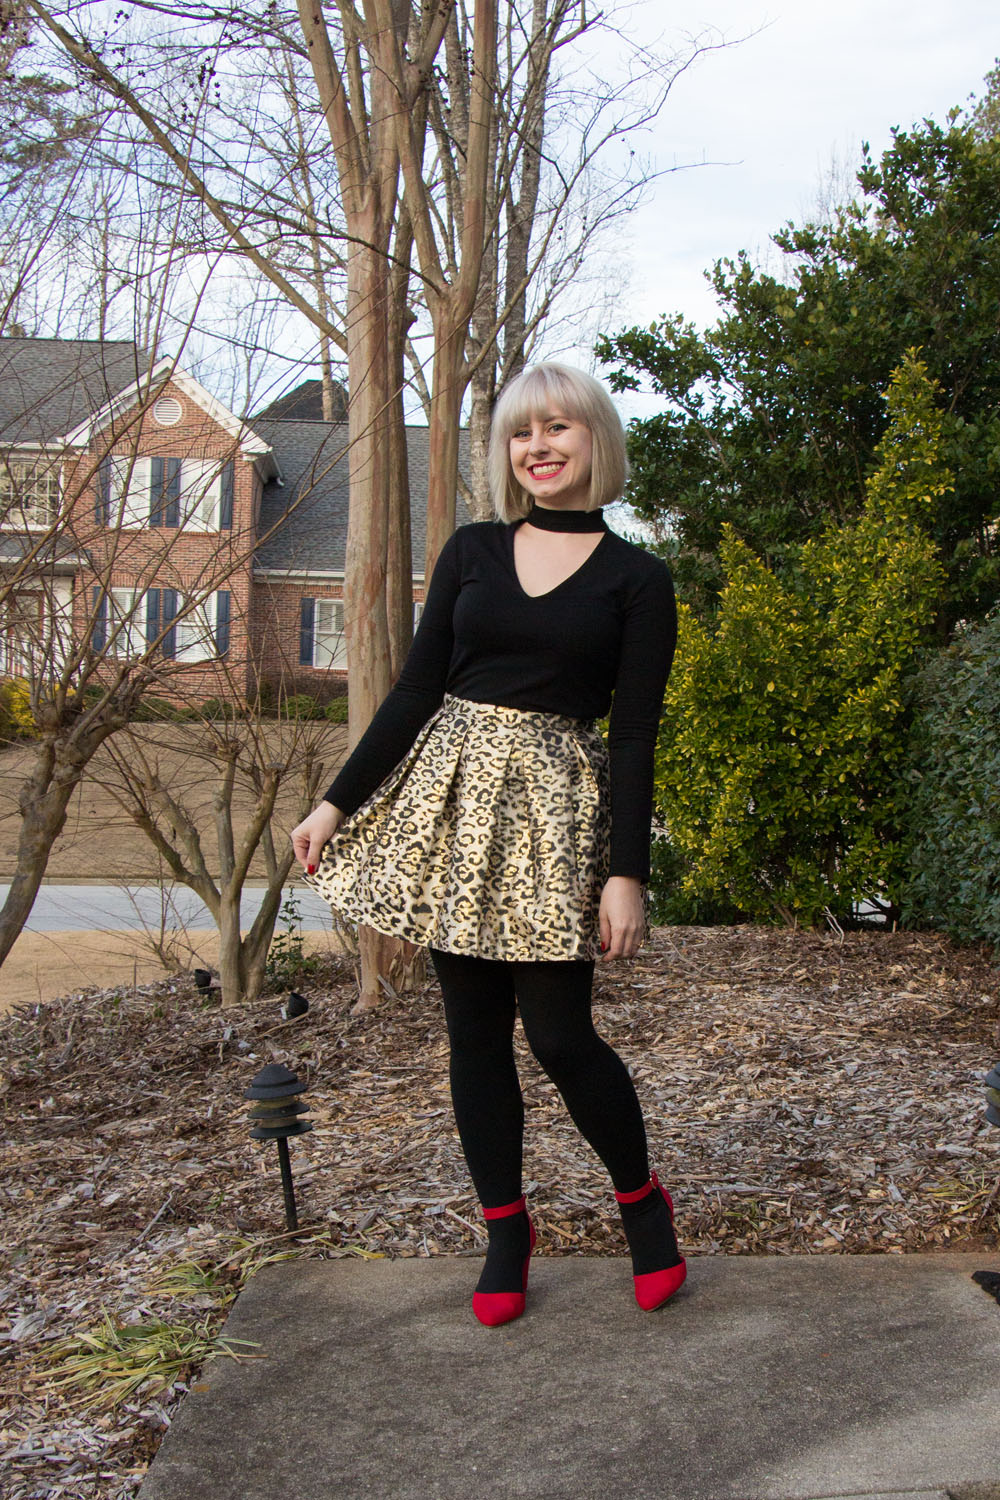 Metallic Leopard Print Skirt with Opaque Black Tights, Red Wedge Heels, and a Faux Choker Top